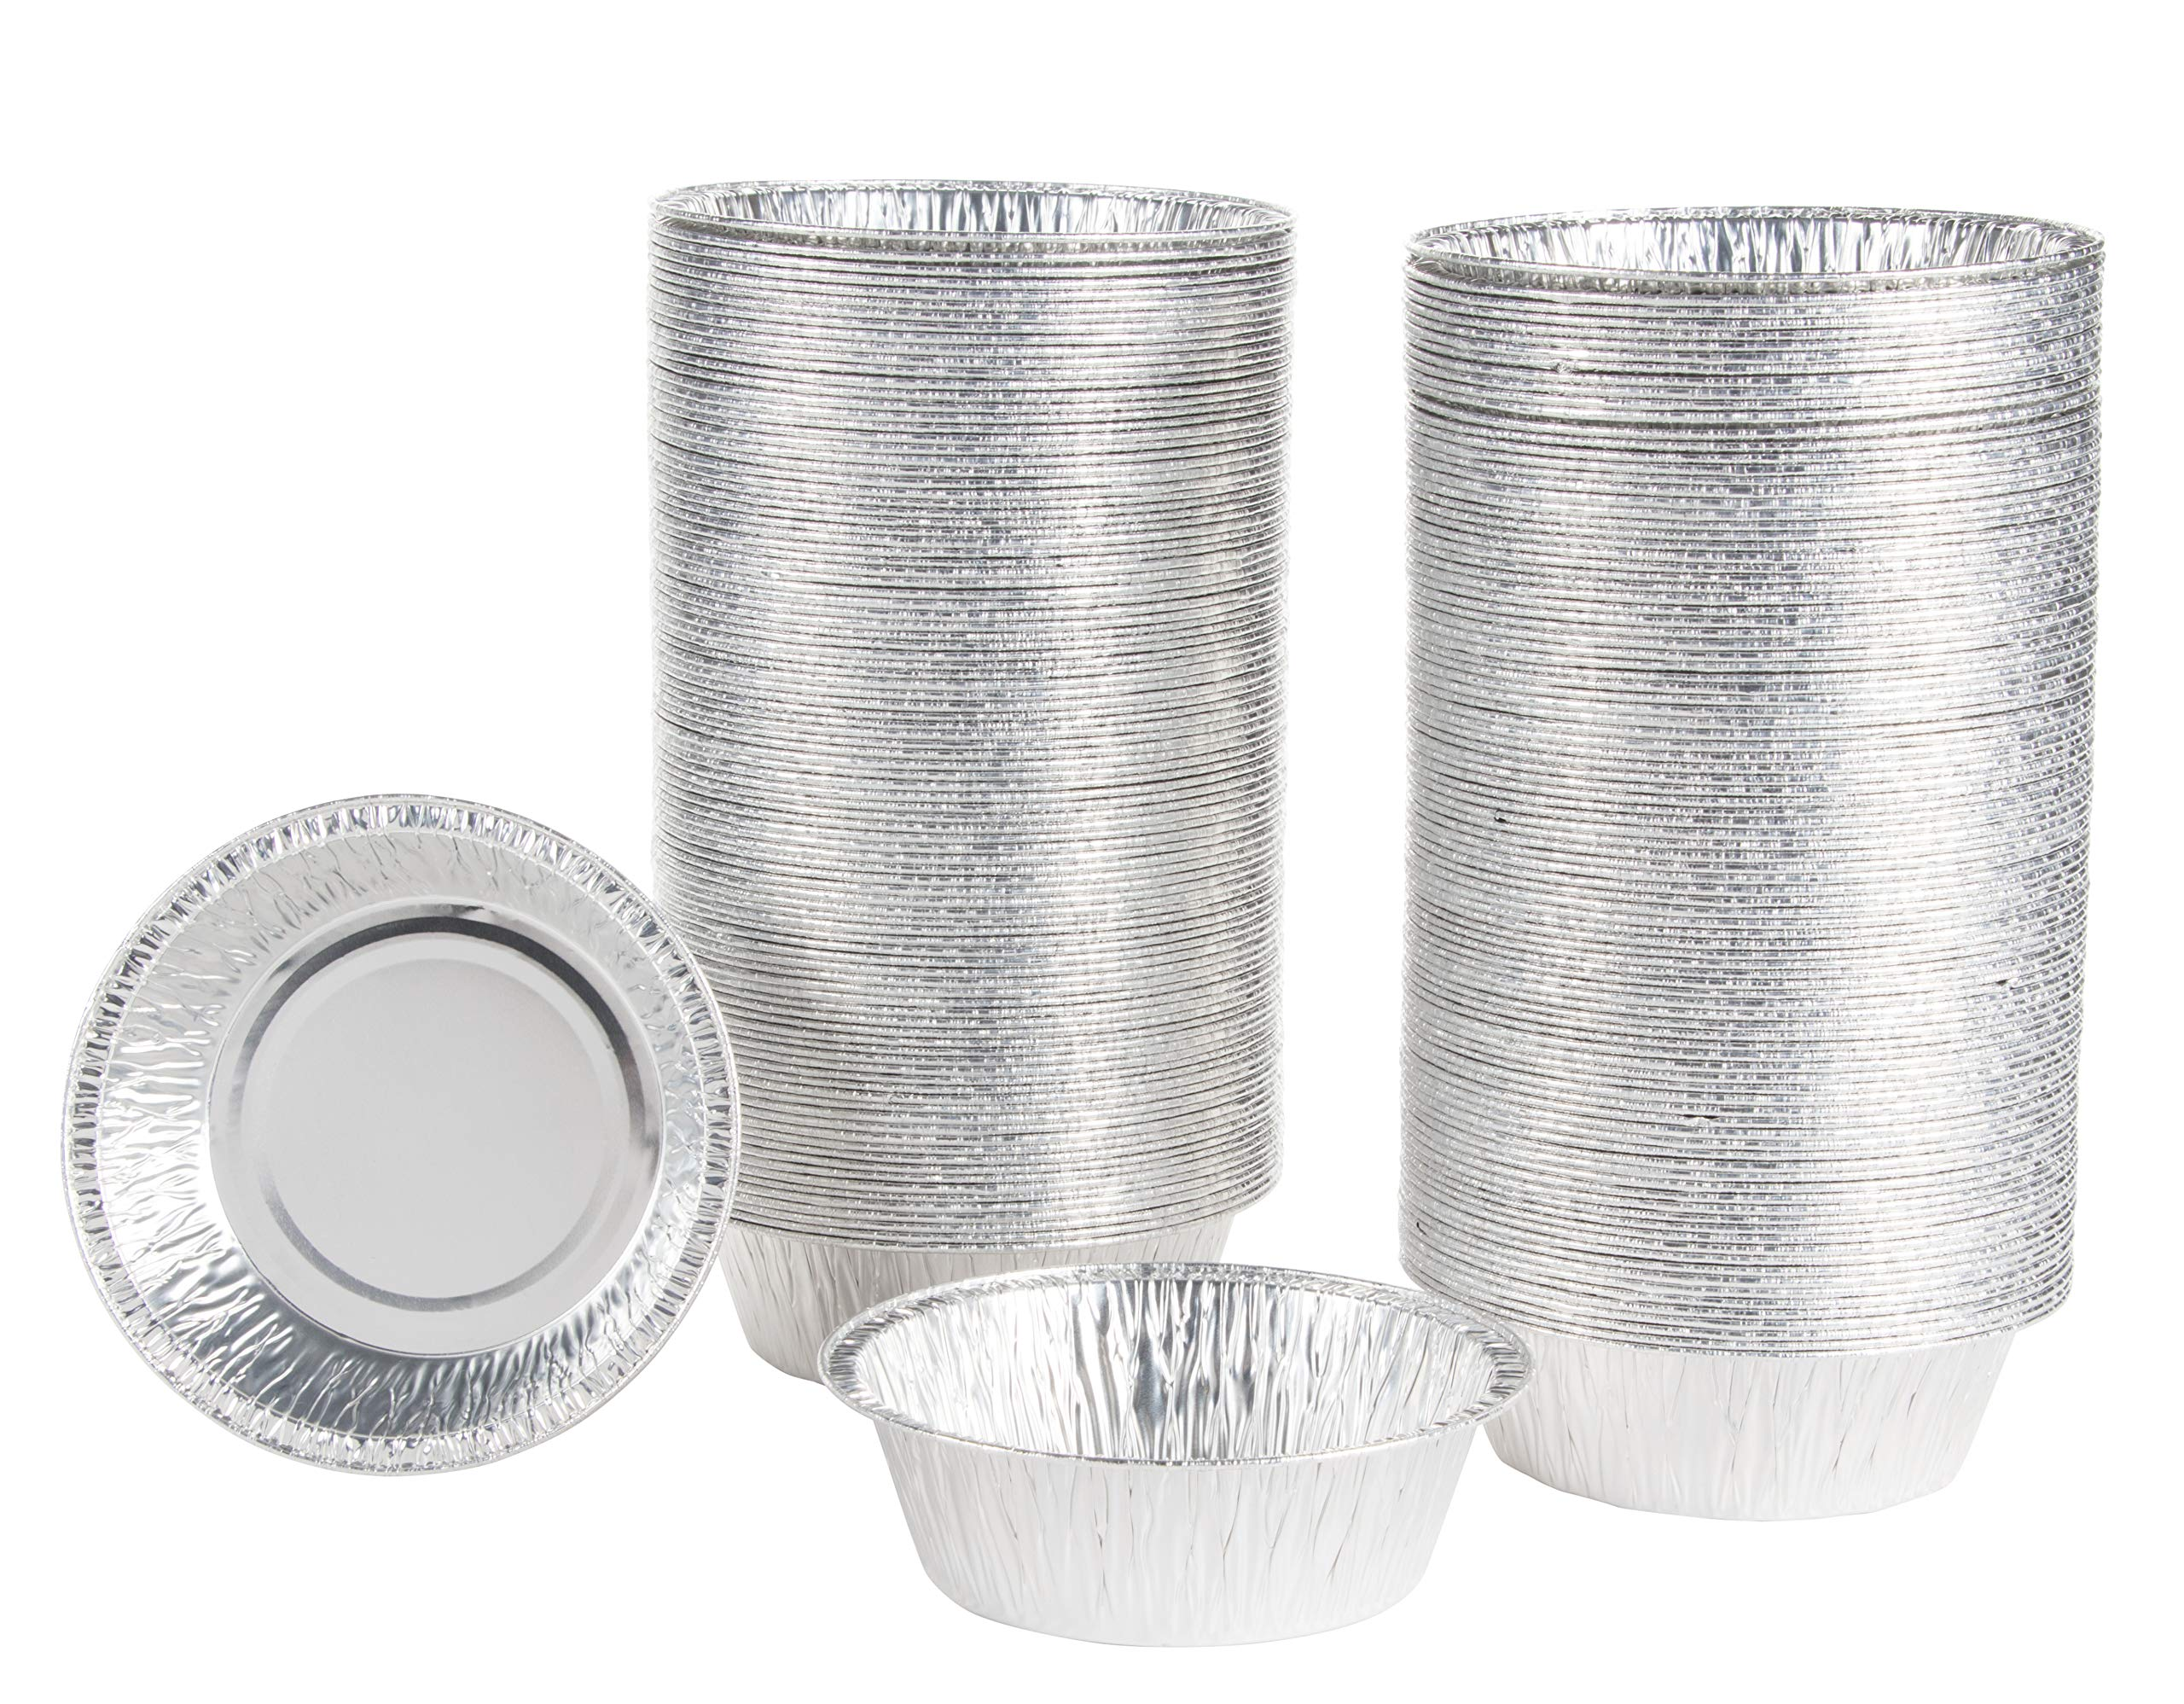 Aluminum Foil Pie Pans - 200-Piece 5'' Round Disposable Tin Pans for Baking, Roasting, Broiling Cooking, For Temperatures Up To 300-F, 5 Inch by Juvale (Image #1)